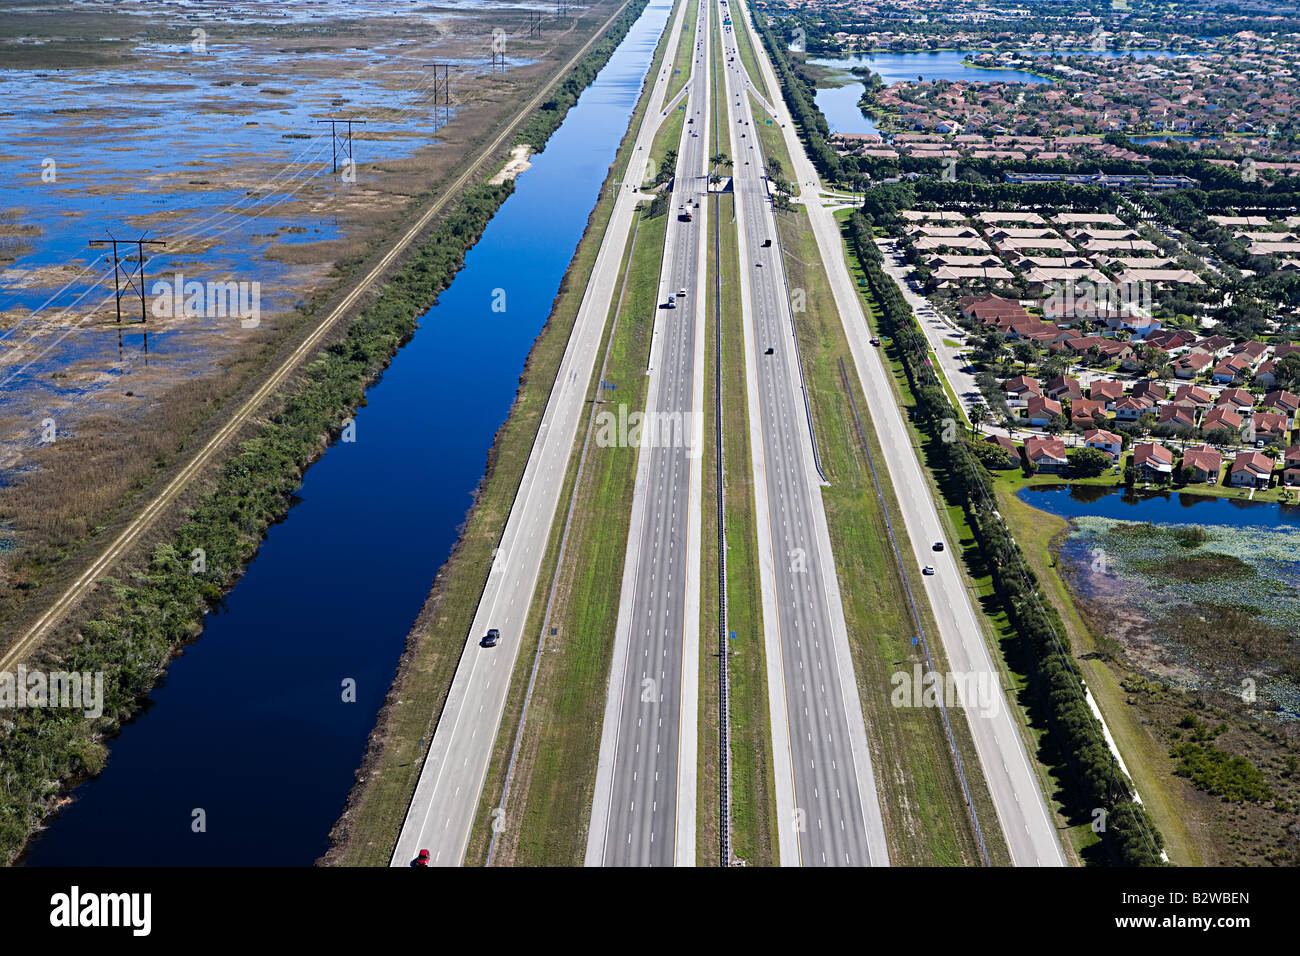 A highway in fort lauderdale Stock Photo